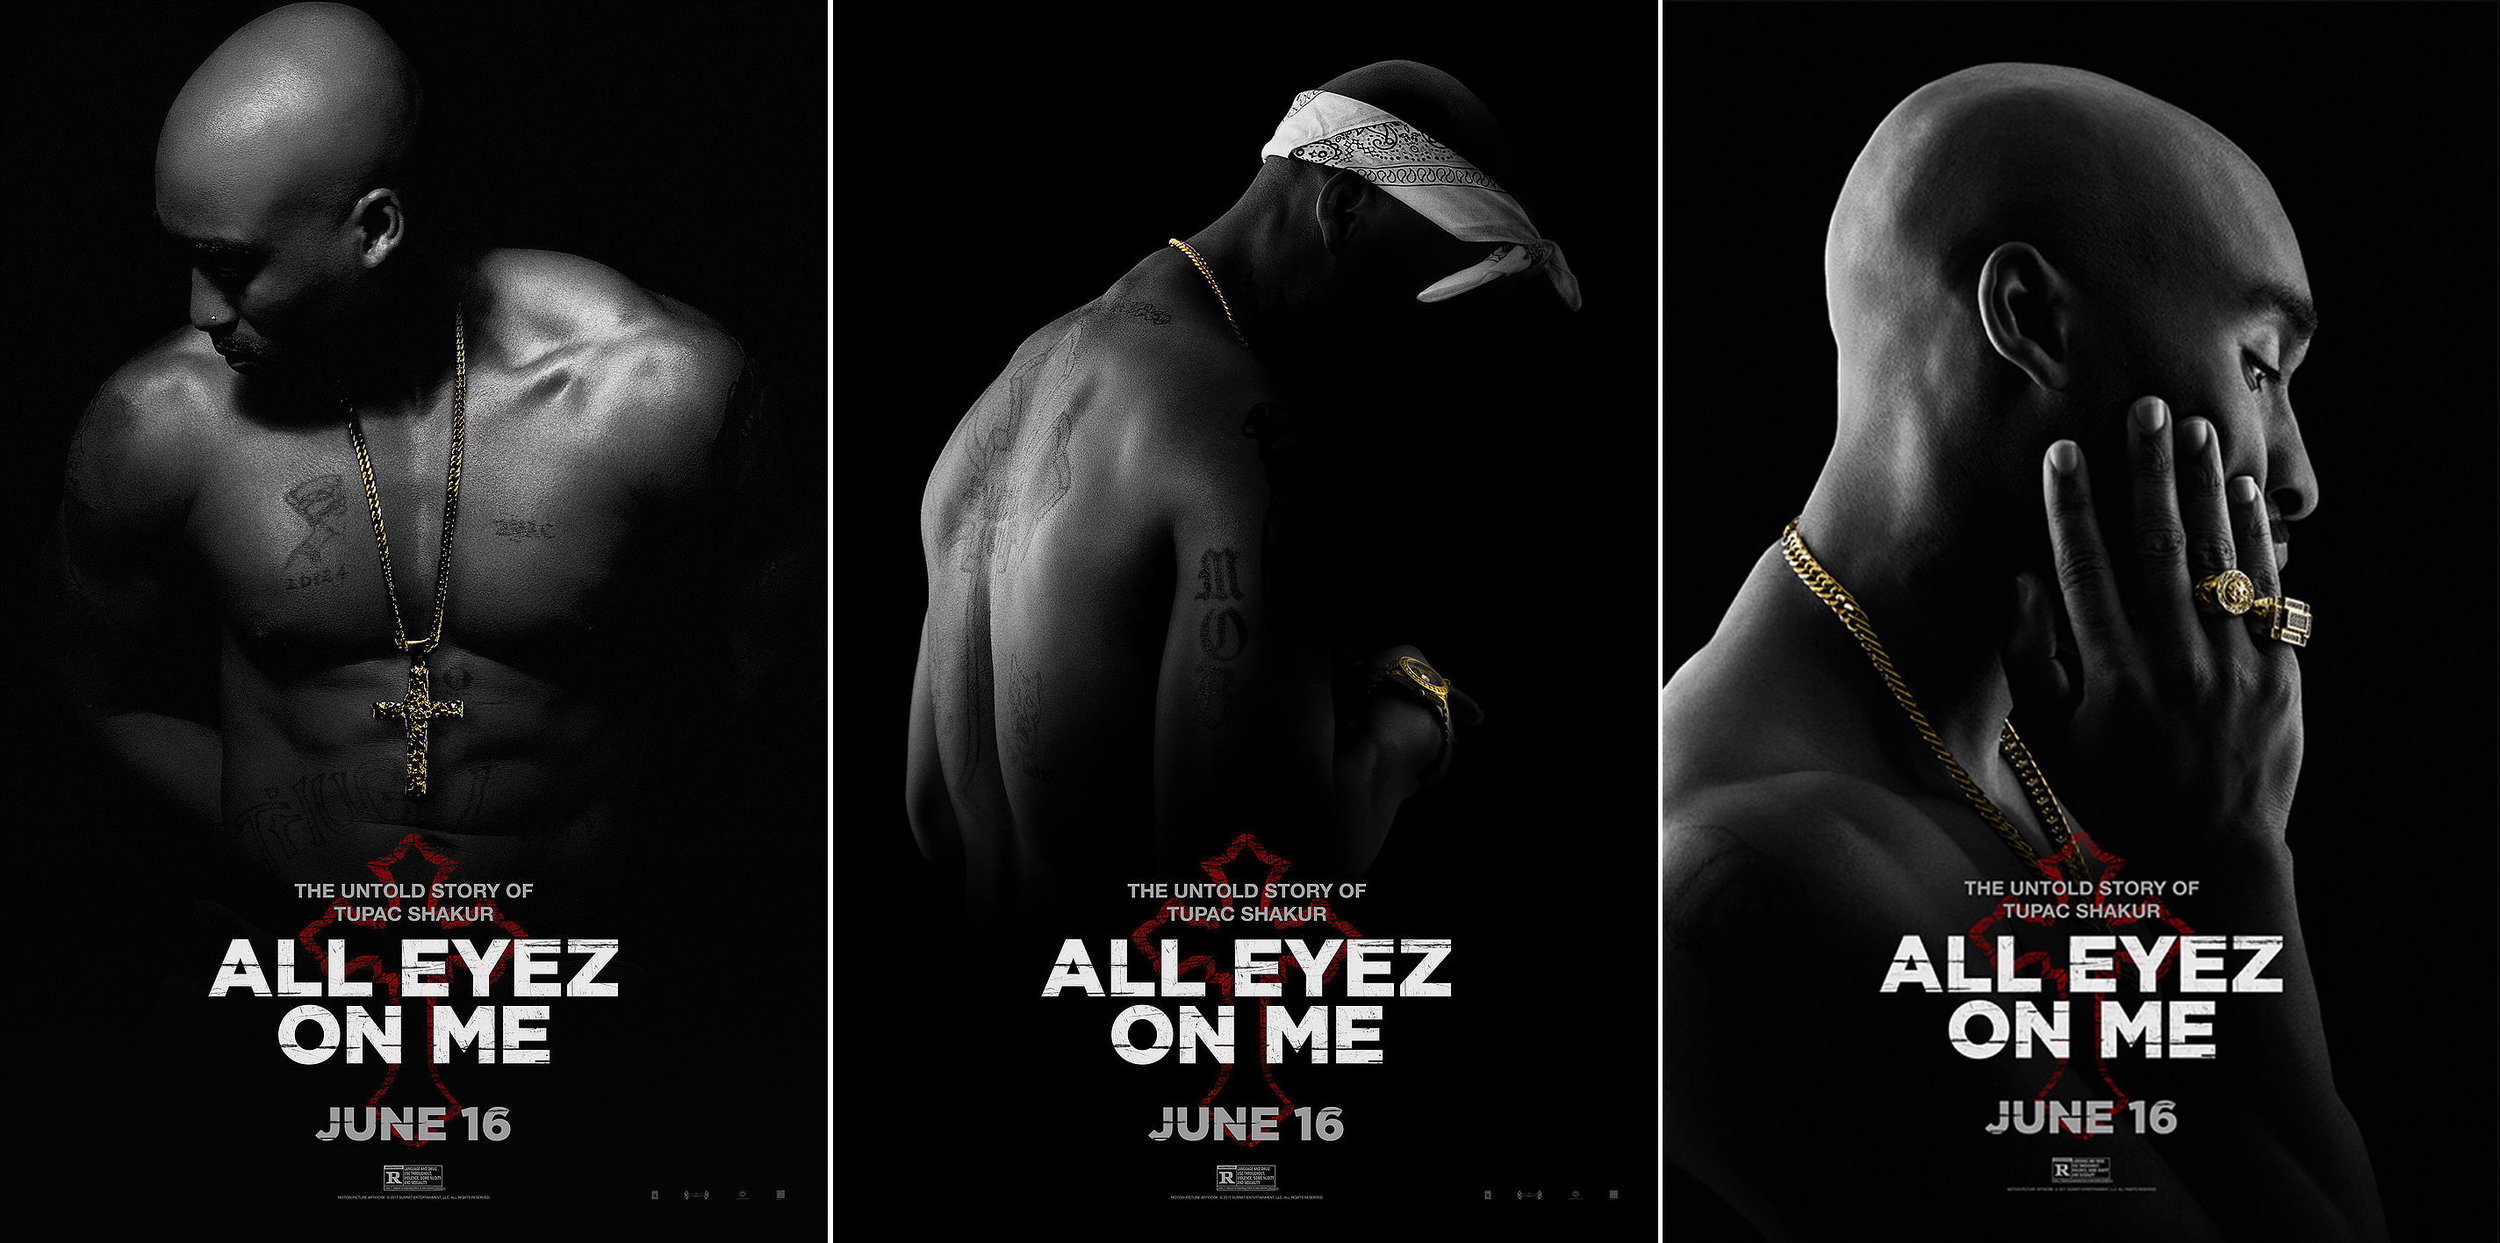 """All Eyez on Me (2017)"" Tupac Biopic Movie Promo Shoot"